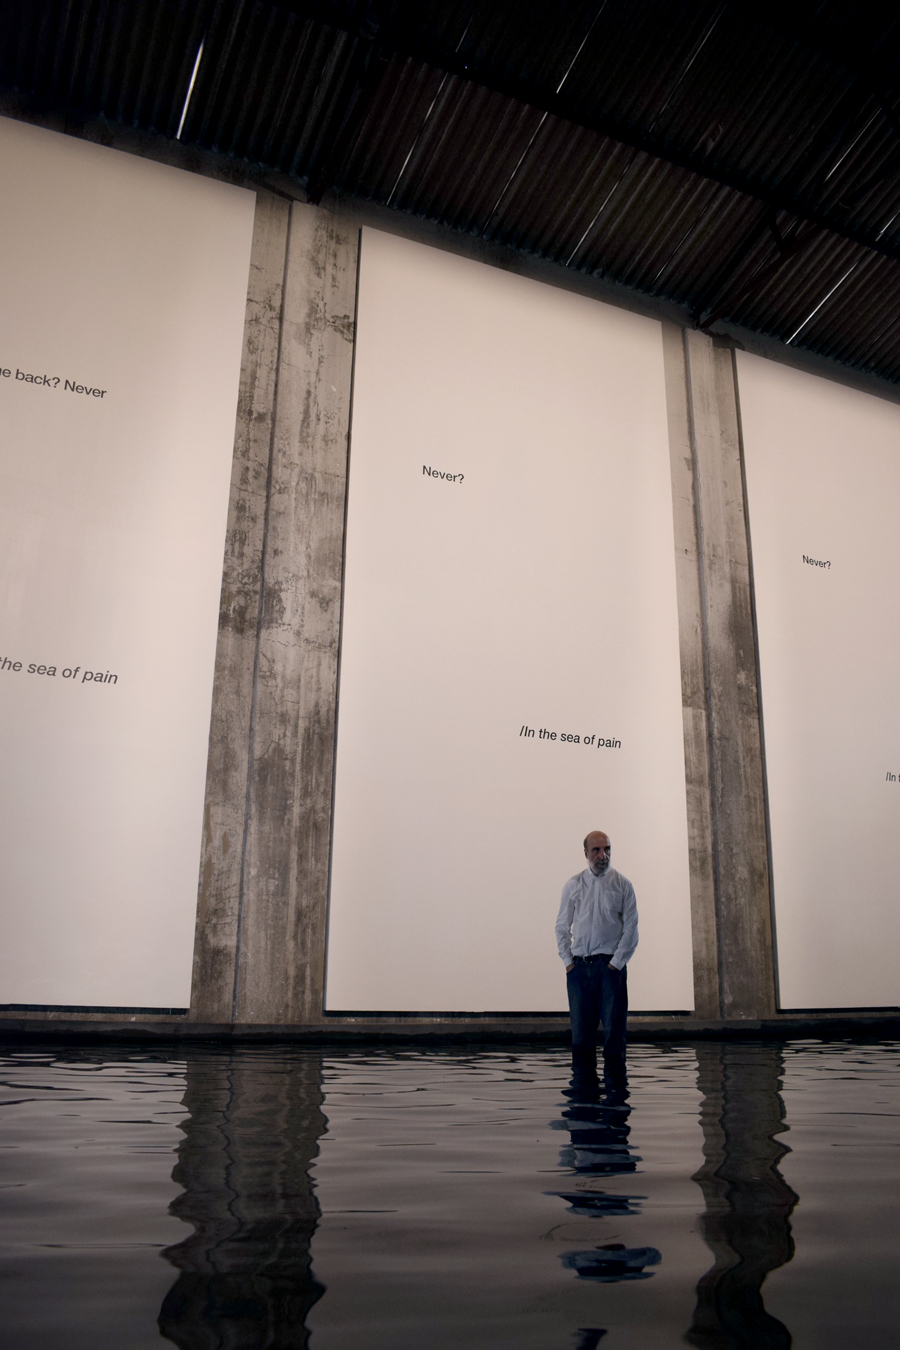 "Among his most important distinctions are the Guggenheim Fellowship in 1984, the National Award for Literature in 2000 and the Pablo Neruda Ibero-American Poetry Award.In the Kochi-Muziris Biennale 2016, he presented the poem-installation ""Sea of Pain"", in which he paid homage to the victims and refugees of the crisis in Syria and to Alan Kourdi, the three-year-old boy that was found dead on a beach in Turkey. -"